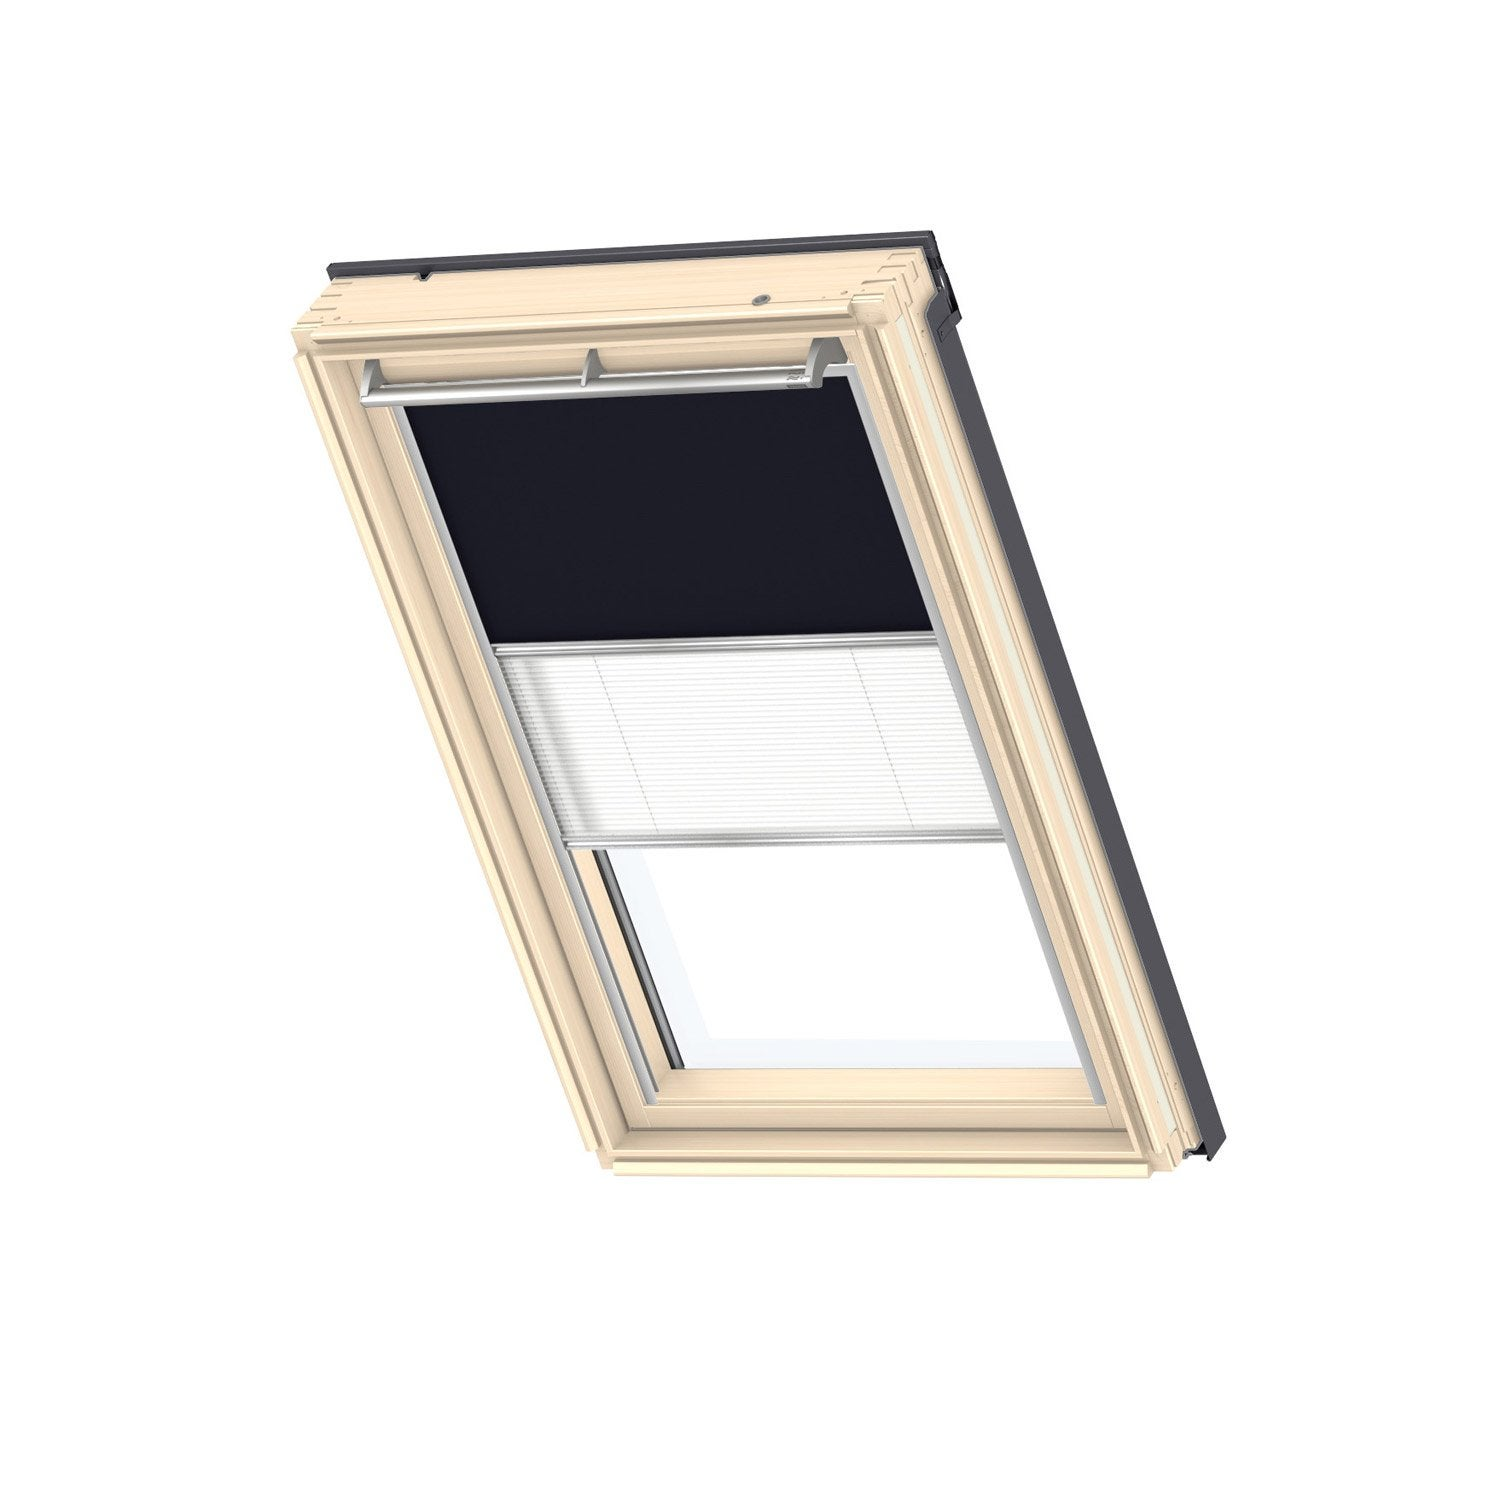 store velux 114x118 pas cher awesome autres vues with store velux 114x118 pas cher fentres de. Black Bedroom Furniture Sets. Home Design Ideas